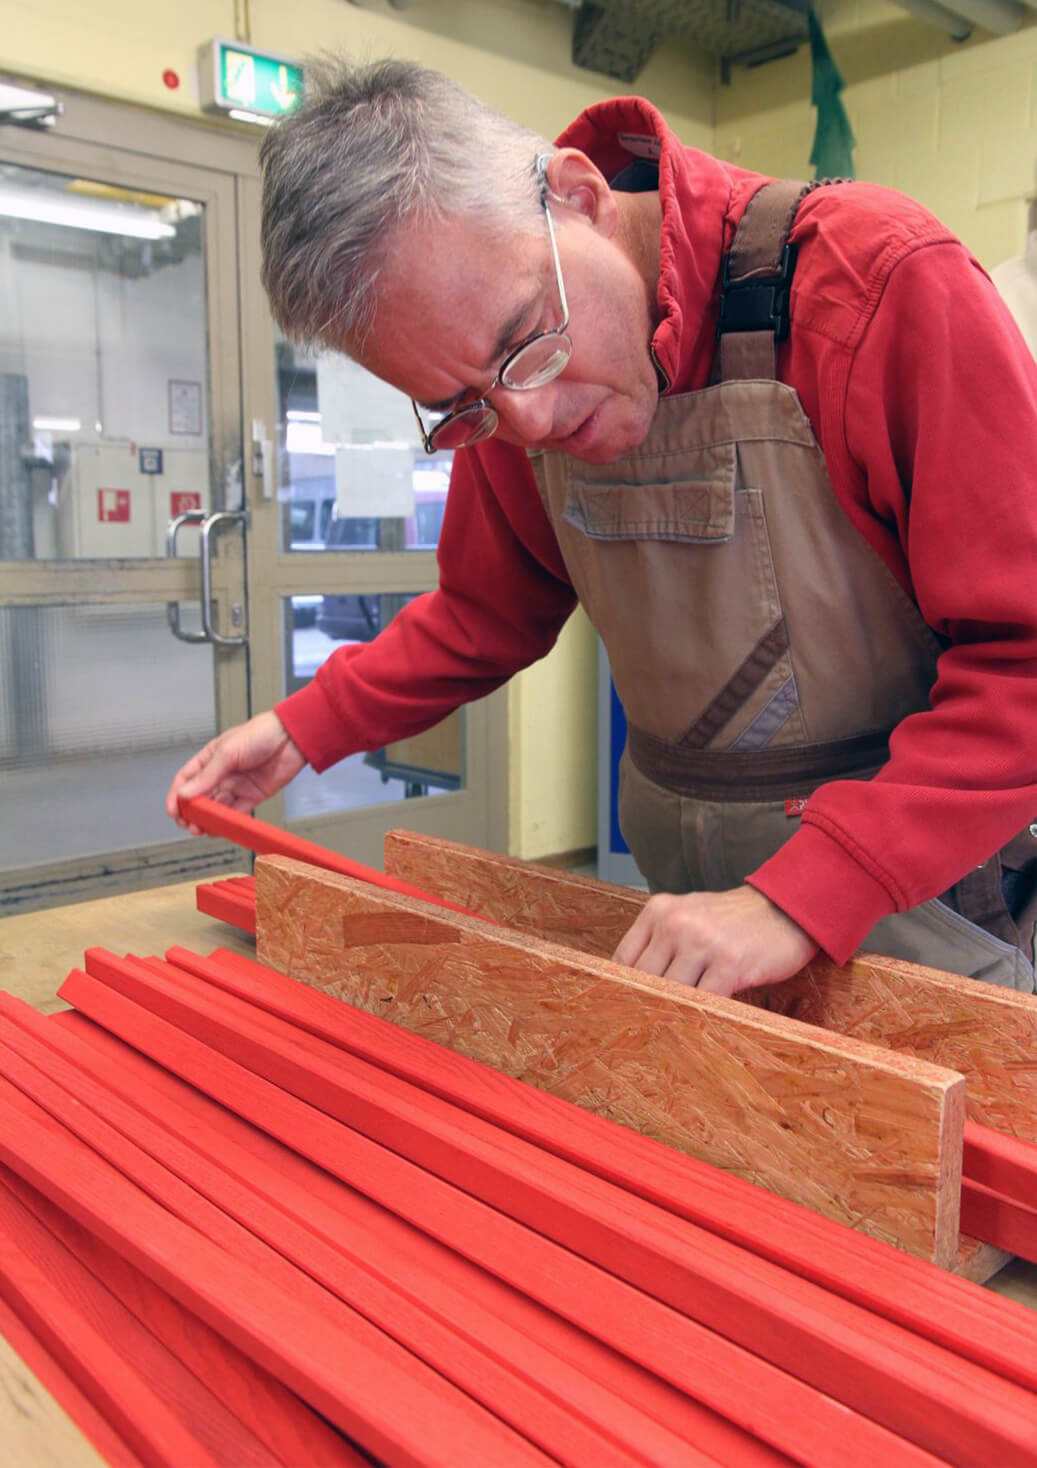 A man wearing an apron inspects red wooden boards that will be crafted into Metalog tools for use in hands on training activities